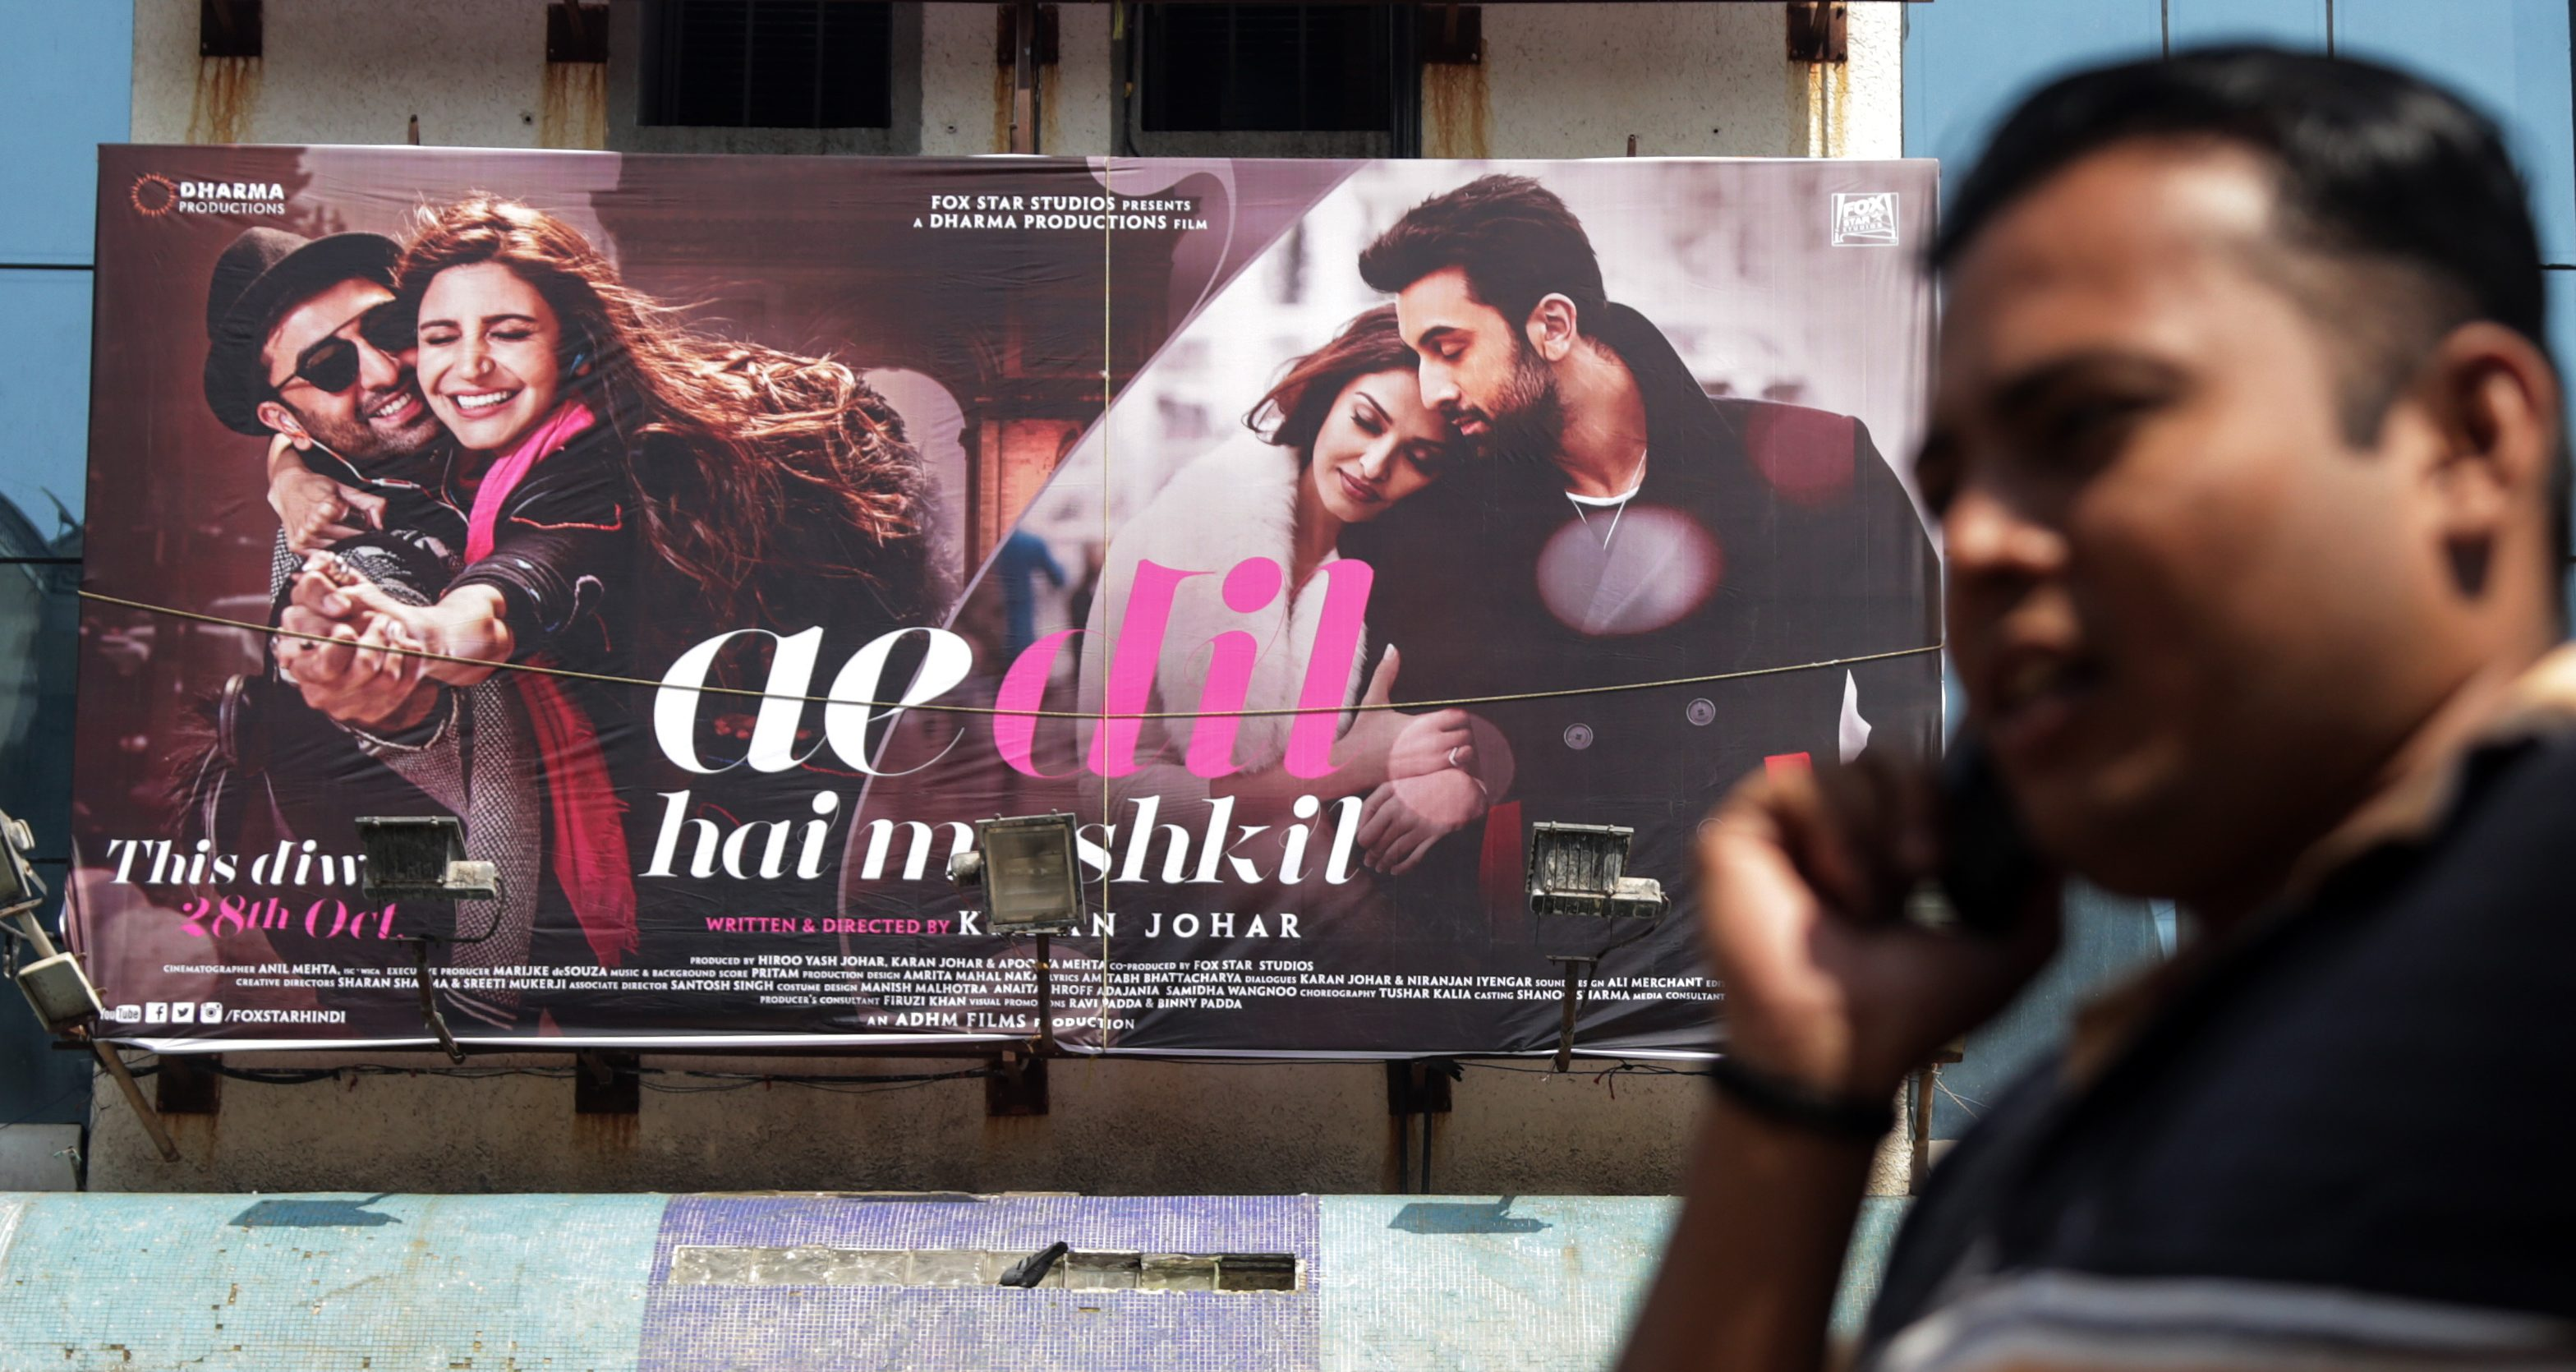 People walk past a theater screening the Bollywood movie 'Ae Dil Hai Mushkil' (This Heart is Complicated) on the first day of its release in Mumbai, India, 28 October 2016. According to reports, after the attack on an Indian army camp in Uri close to the Line of Control, which divides Kashmir between India and Pakistan, Raj Thackeray-led Maharashtra Navnirman Sena (MNS) threatened to stall the release of the movie 'Ae Dil Hai Mushkil,' starring Indian actors Ranbir Kapoor, Anushka Sharma, Aishwarya Rai Bachchan and Pakistani actor Fawad Khan, but after the intervention of the state government, MNS agreed to let the film release with the condition that they don't hire any Pakistani artists in future.